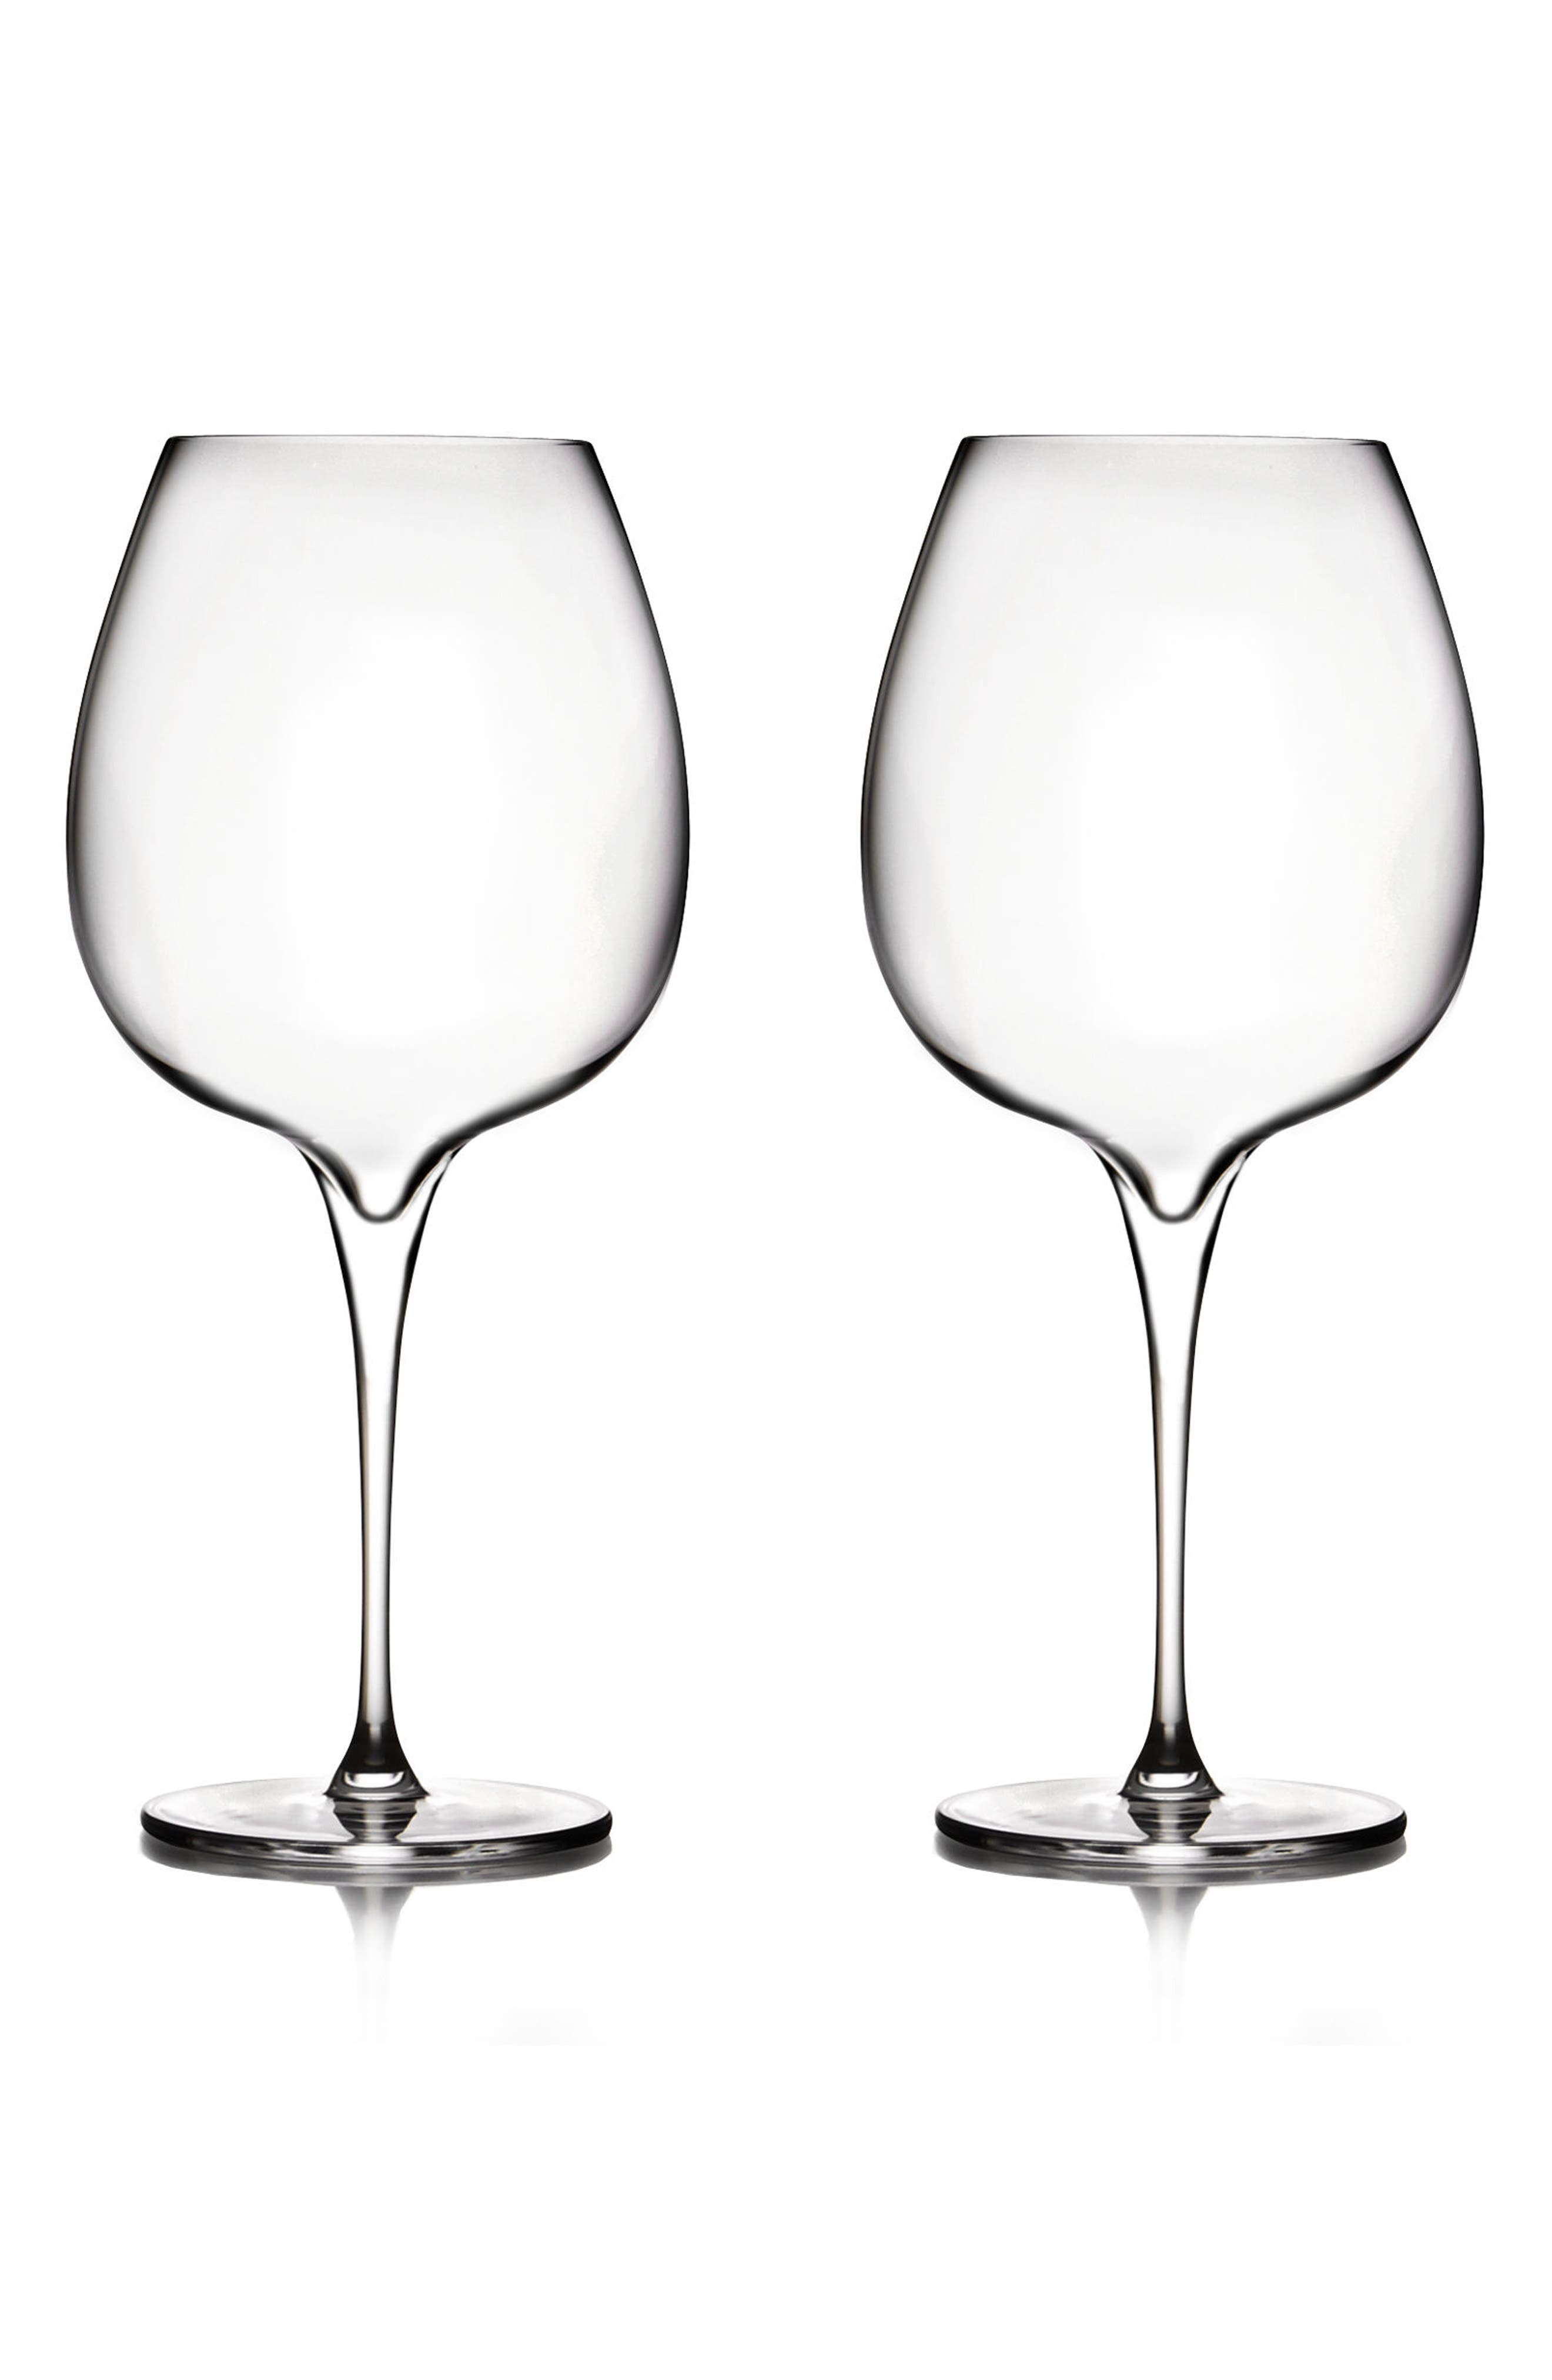 Vie Set of 2 Pinot Noir Glasses,                         Main,                         color, Clear